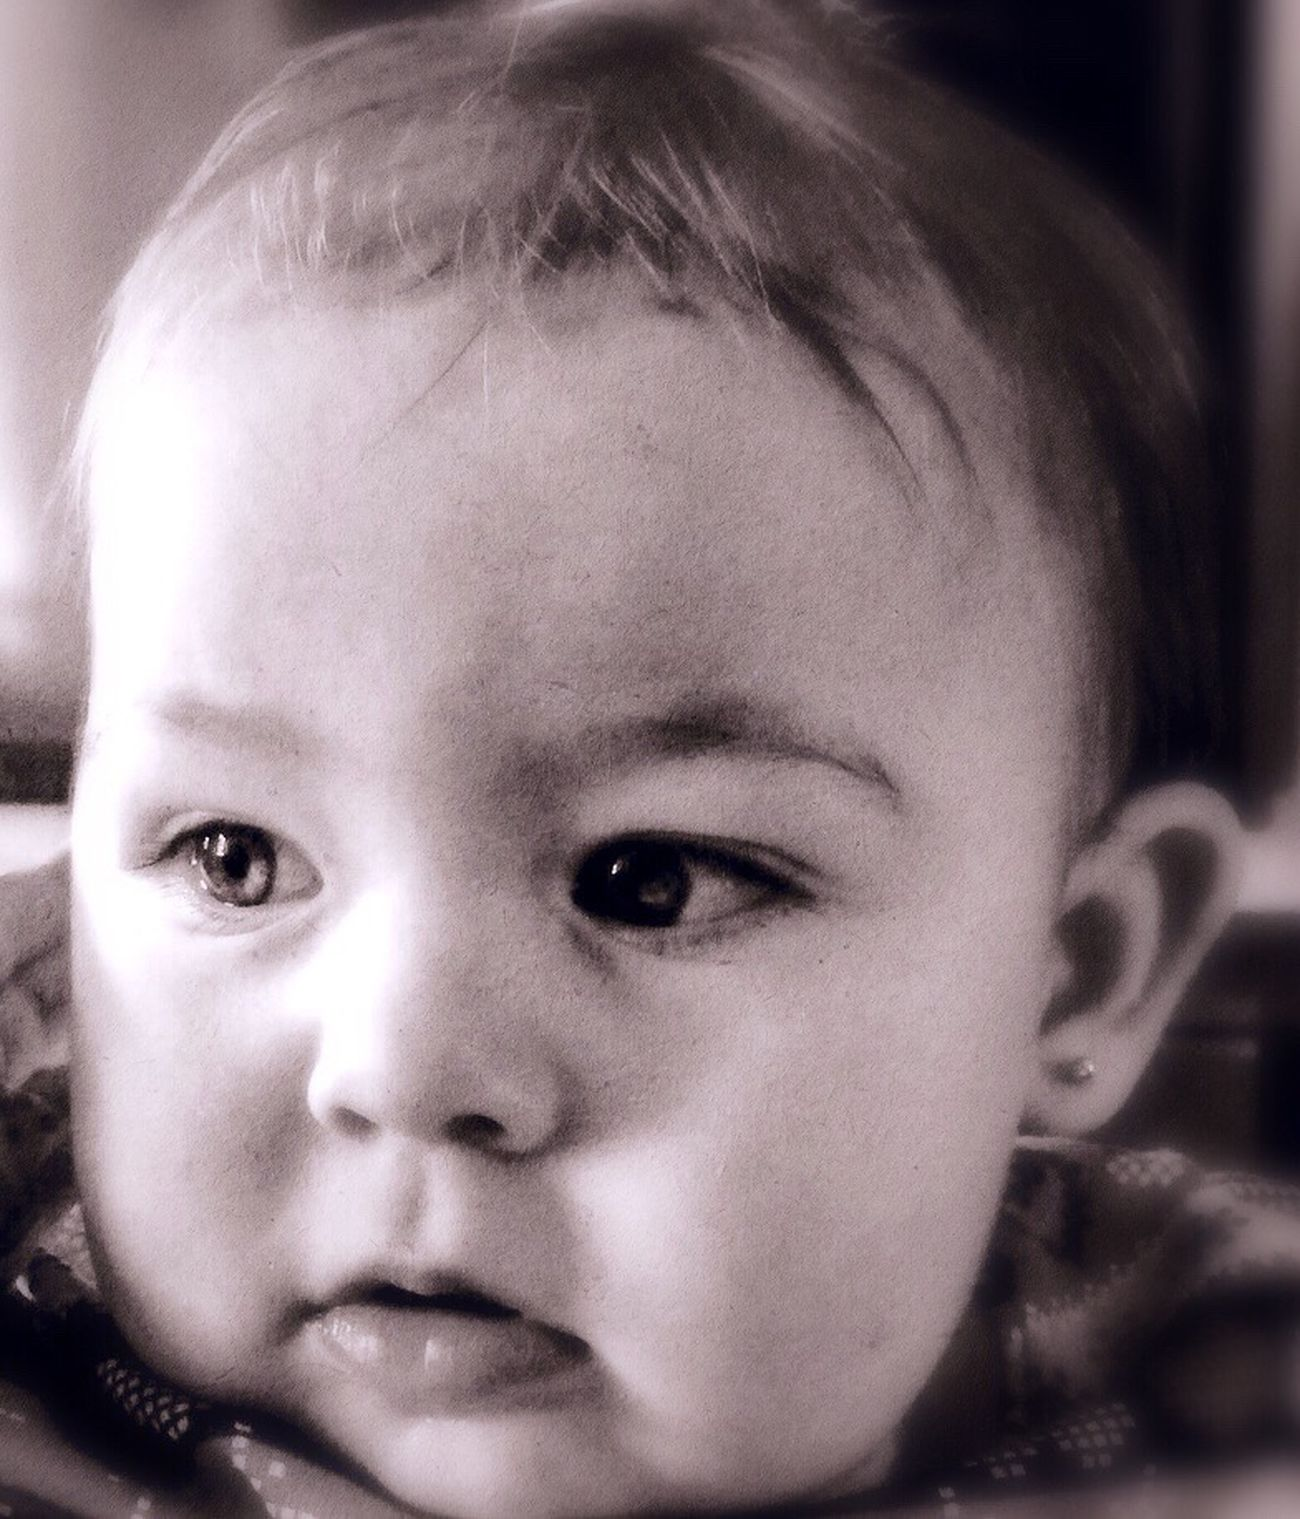 Innocence IPhoneography Childhood Innocence Cute One Person Looking At Camera Close-up Portrait Human Face Real People Front View Headshot Human Eye Indoors  Day People Editedbyme Previous Photo Camerafilters Baby